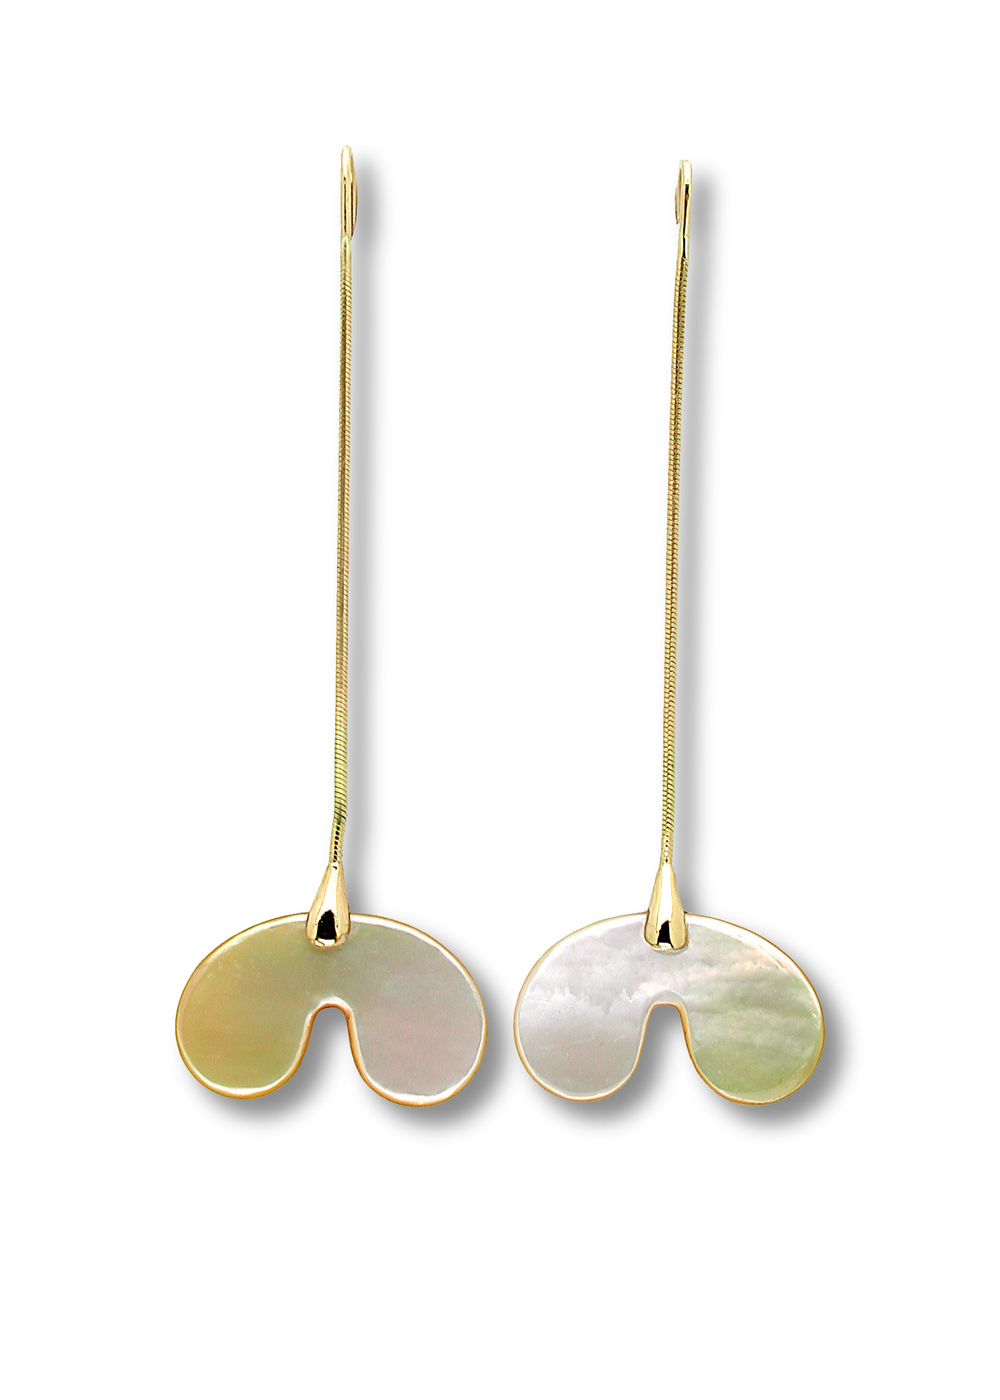 Gurmit's Yoni earrings   inspired by he yoni symbol. 18 carat   gold and Mother Of Pearl.